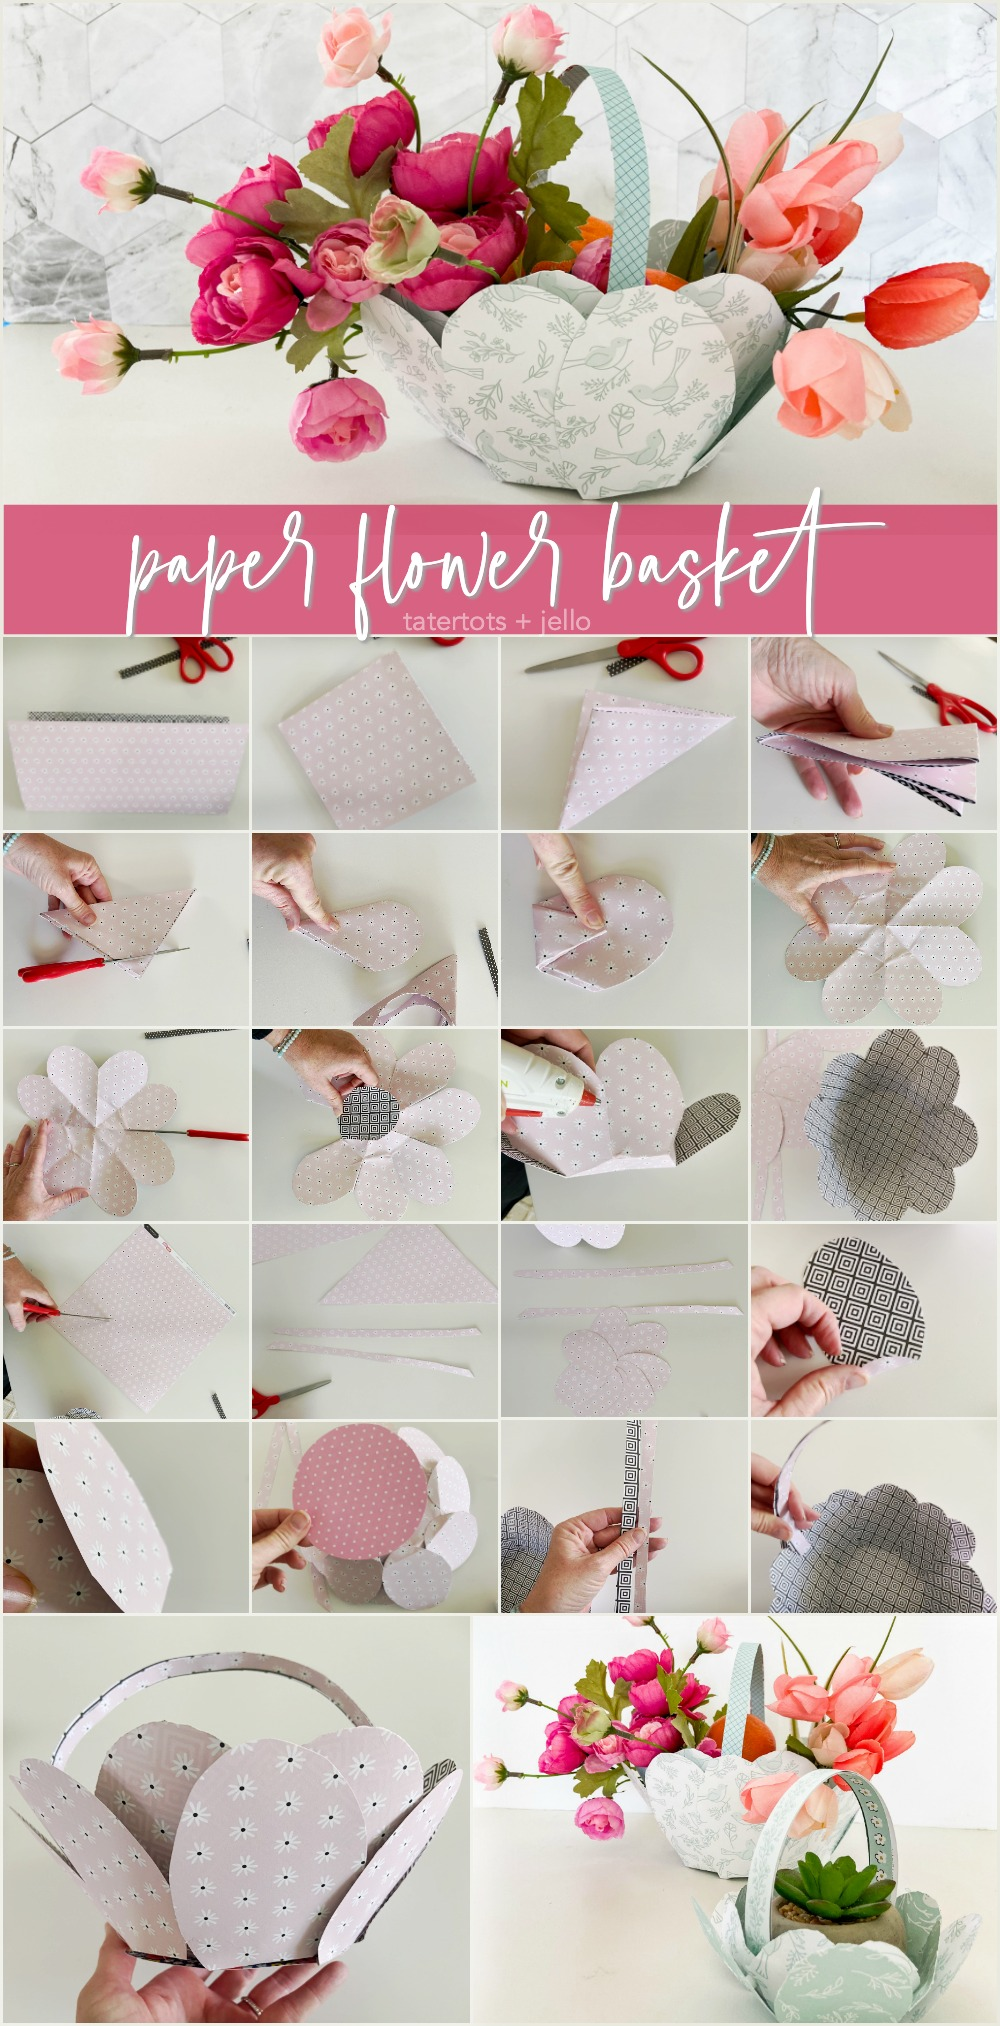 Paper Flower Gift Baskets for Spring or Easter. Turn paper into delightful flower baskets that you can fill with treats as a small gift on your Easter or Mother's Day table, or make a bigger size to take to a friend or neighbor.